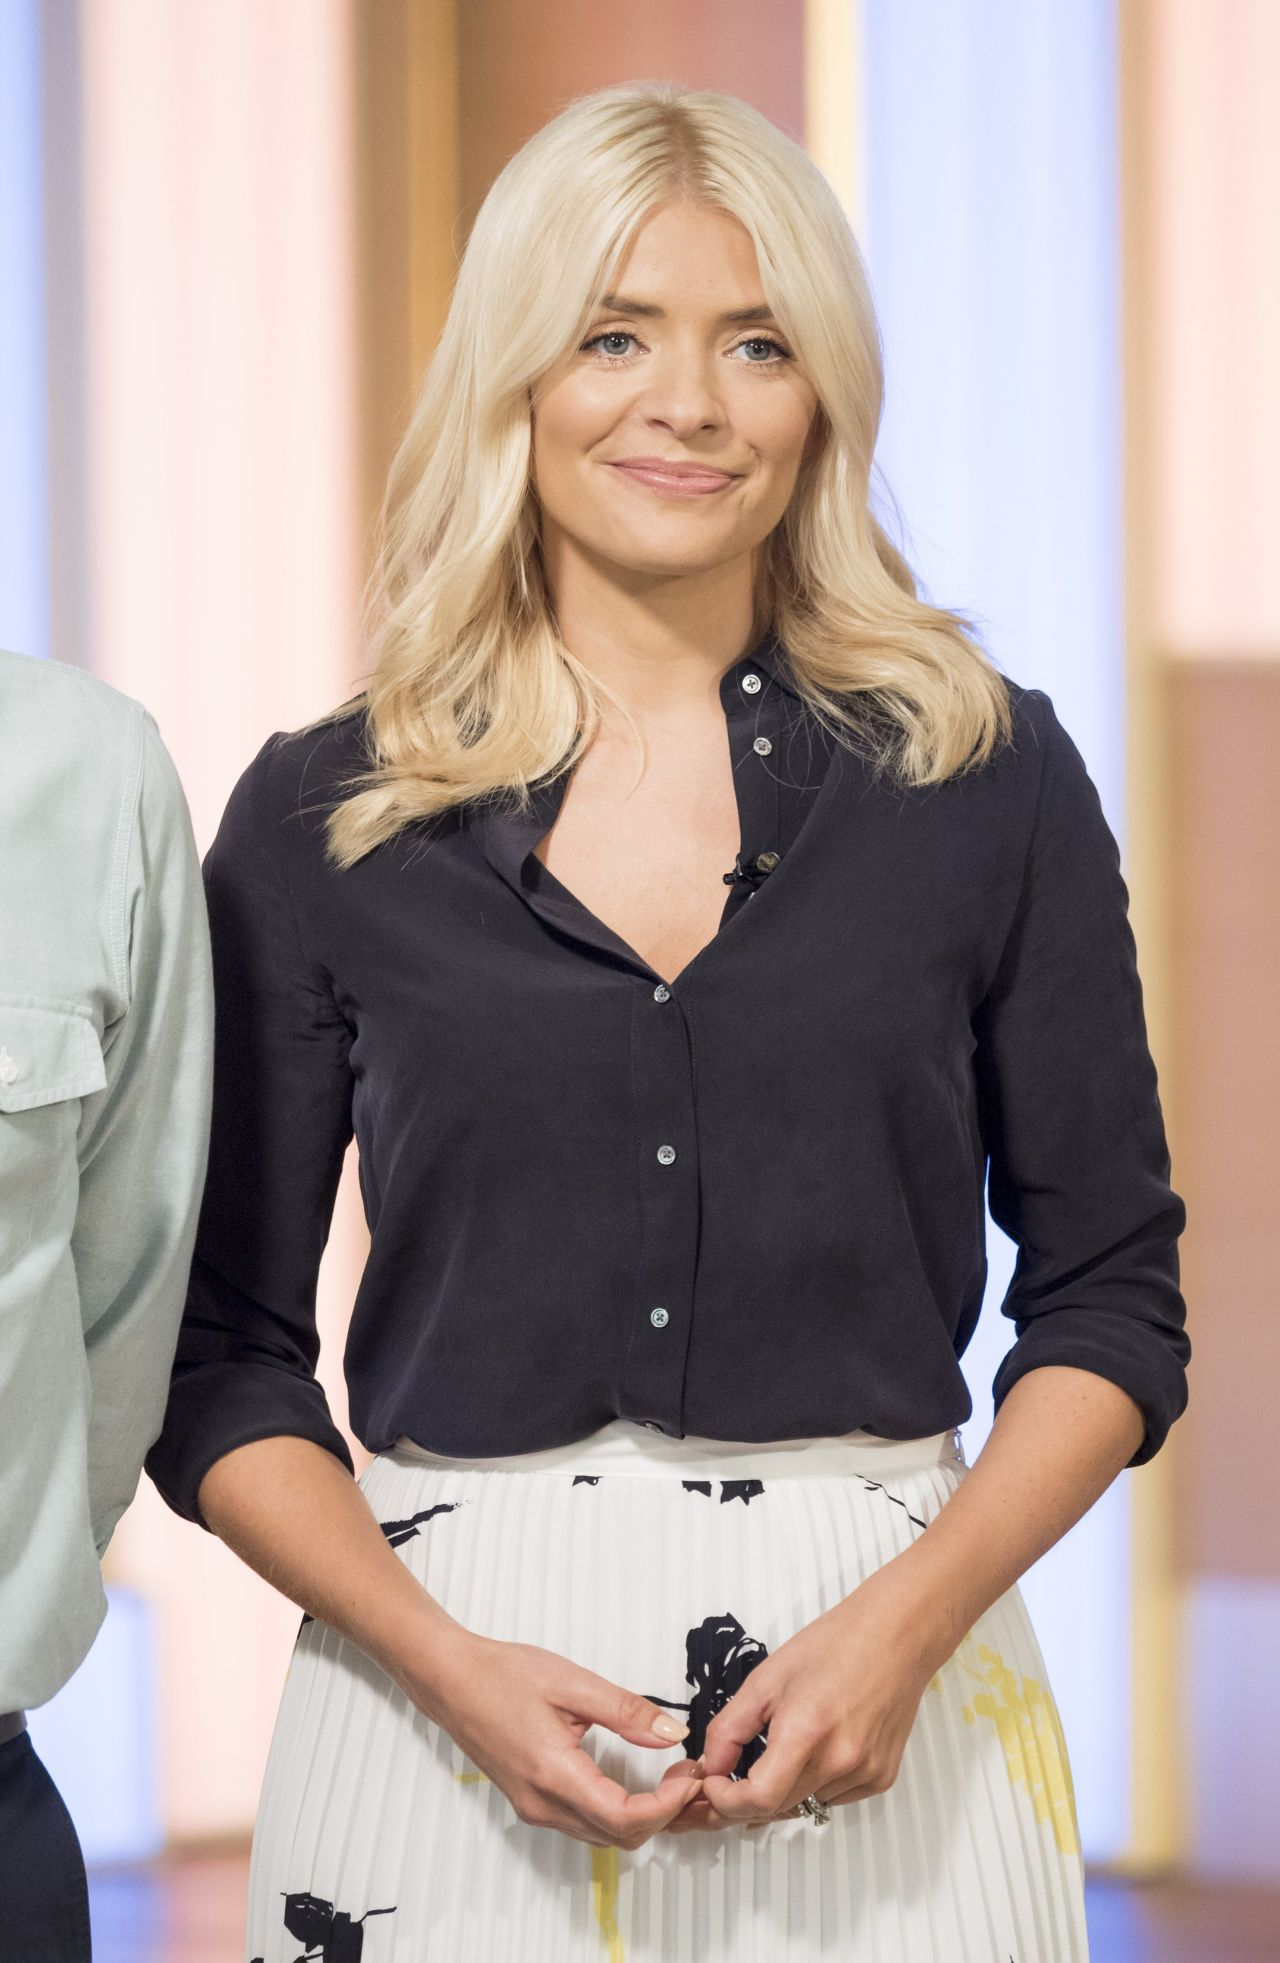 holly willoughby quotthis morningquot tv show in london 06272017